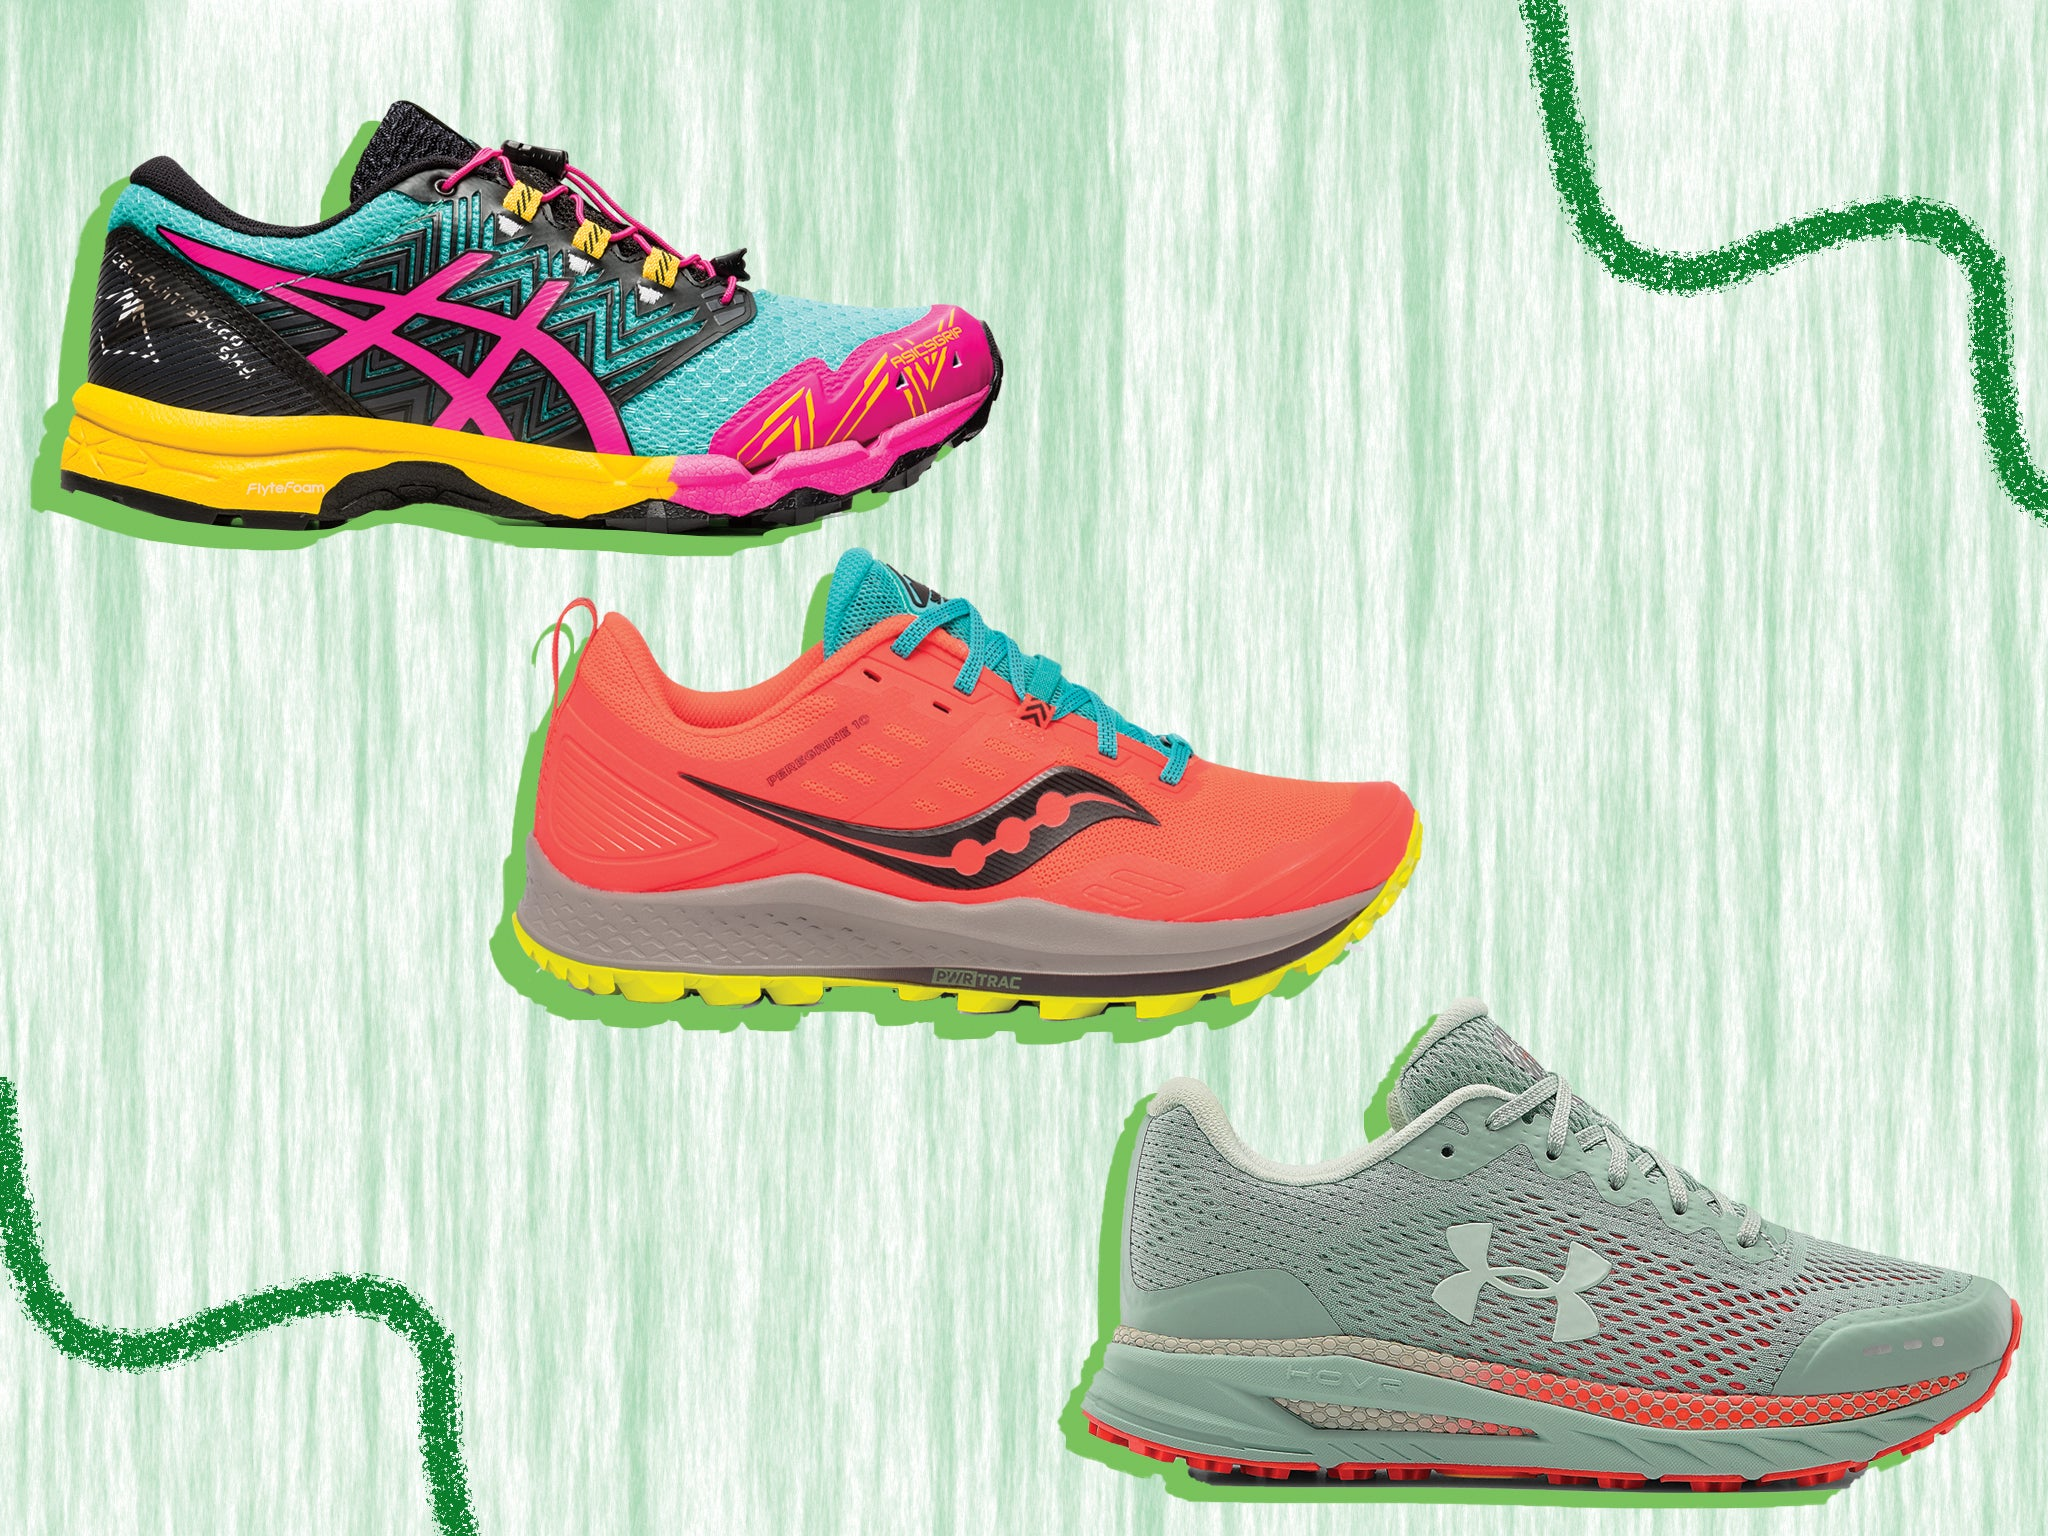 The best women's running shoes 2020